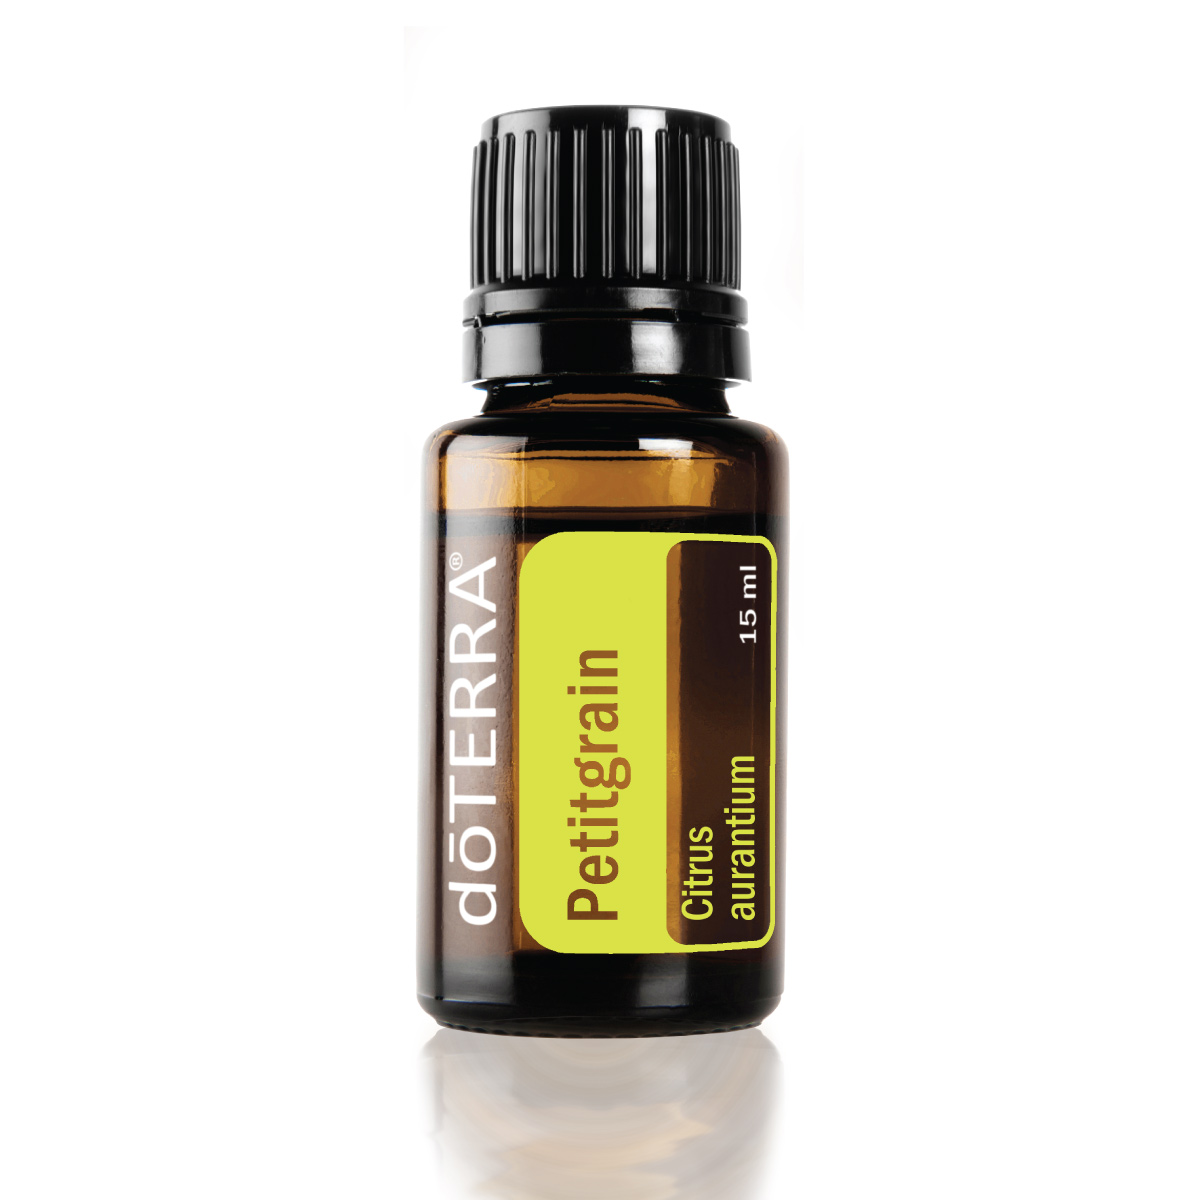 Bottle of doTERRA Petitgrain oil. What is Petitgrain essential oil used for? Petitgrain oil can be used to support restful sleep, for antioxidant support, and more.